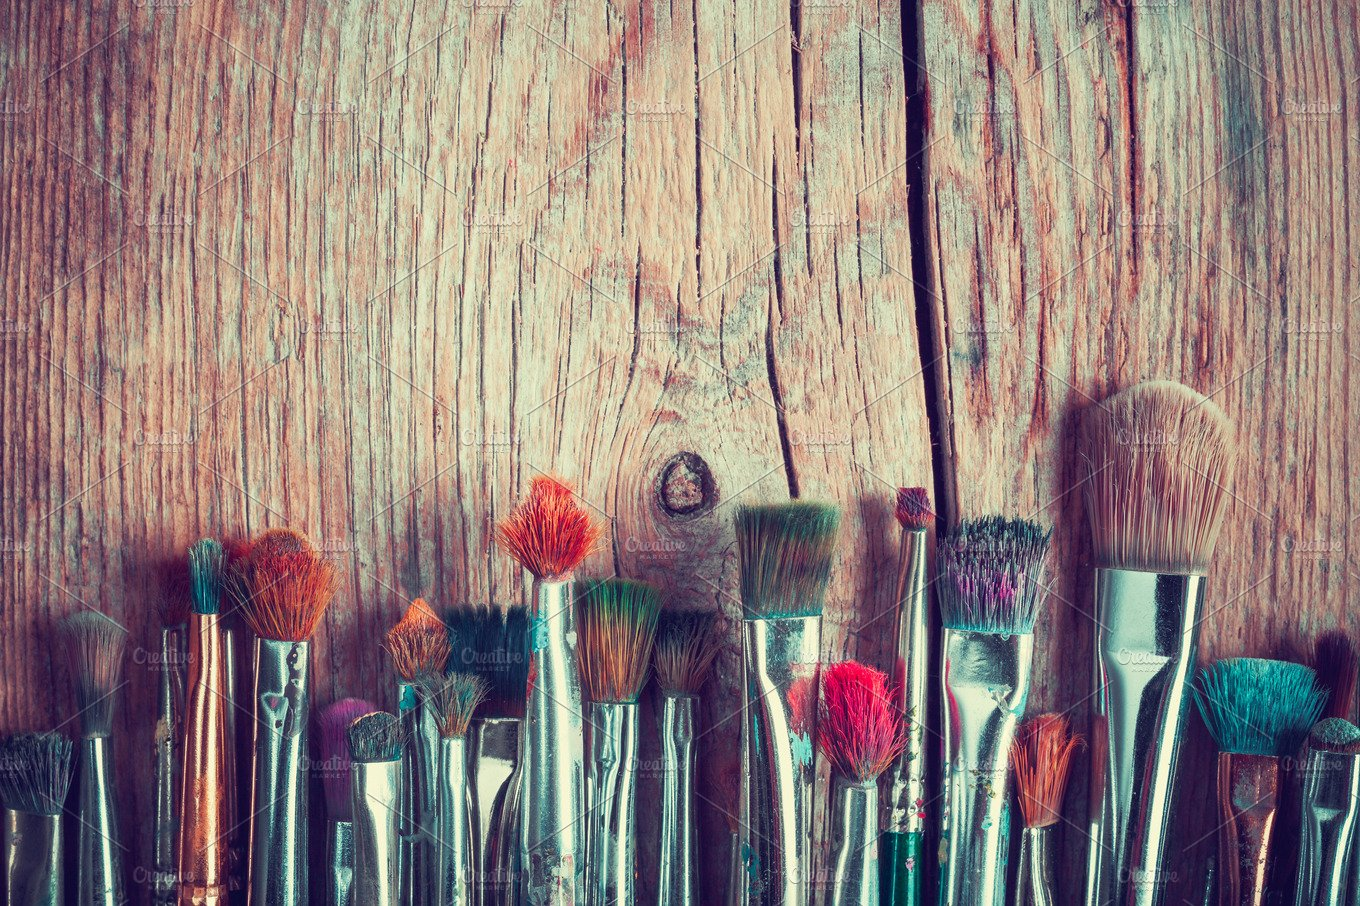 Row Of Artist Paint Brushes Arts Entertainment Photos Creative Market